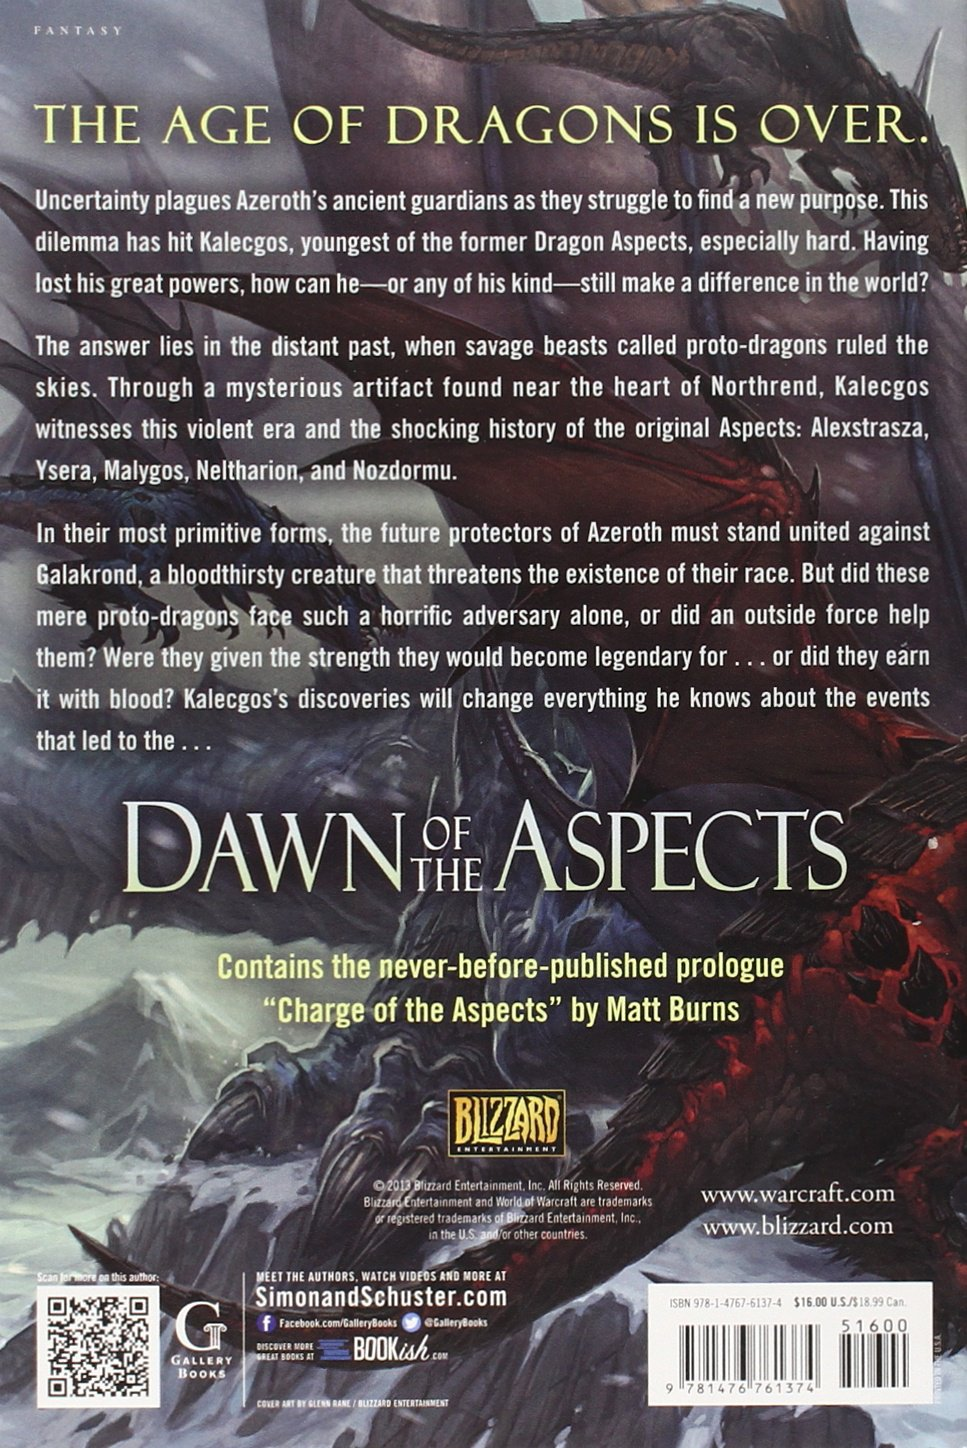 Dawn of the Aspects: Part IV (World of Warcraft)